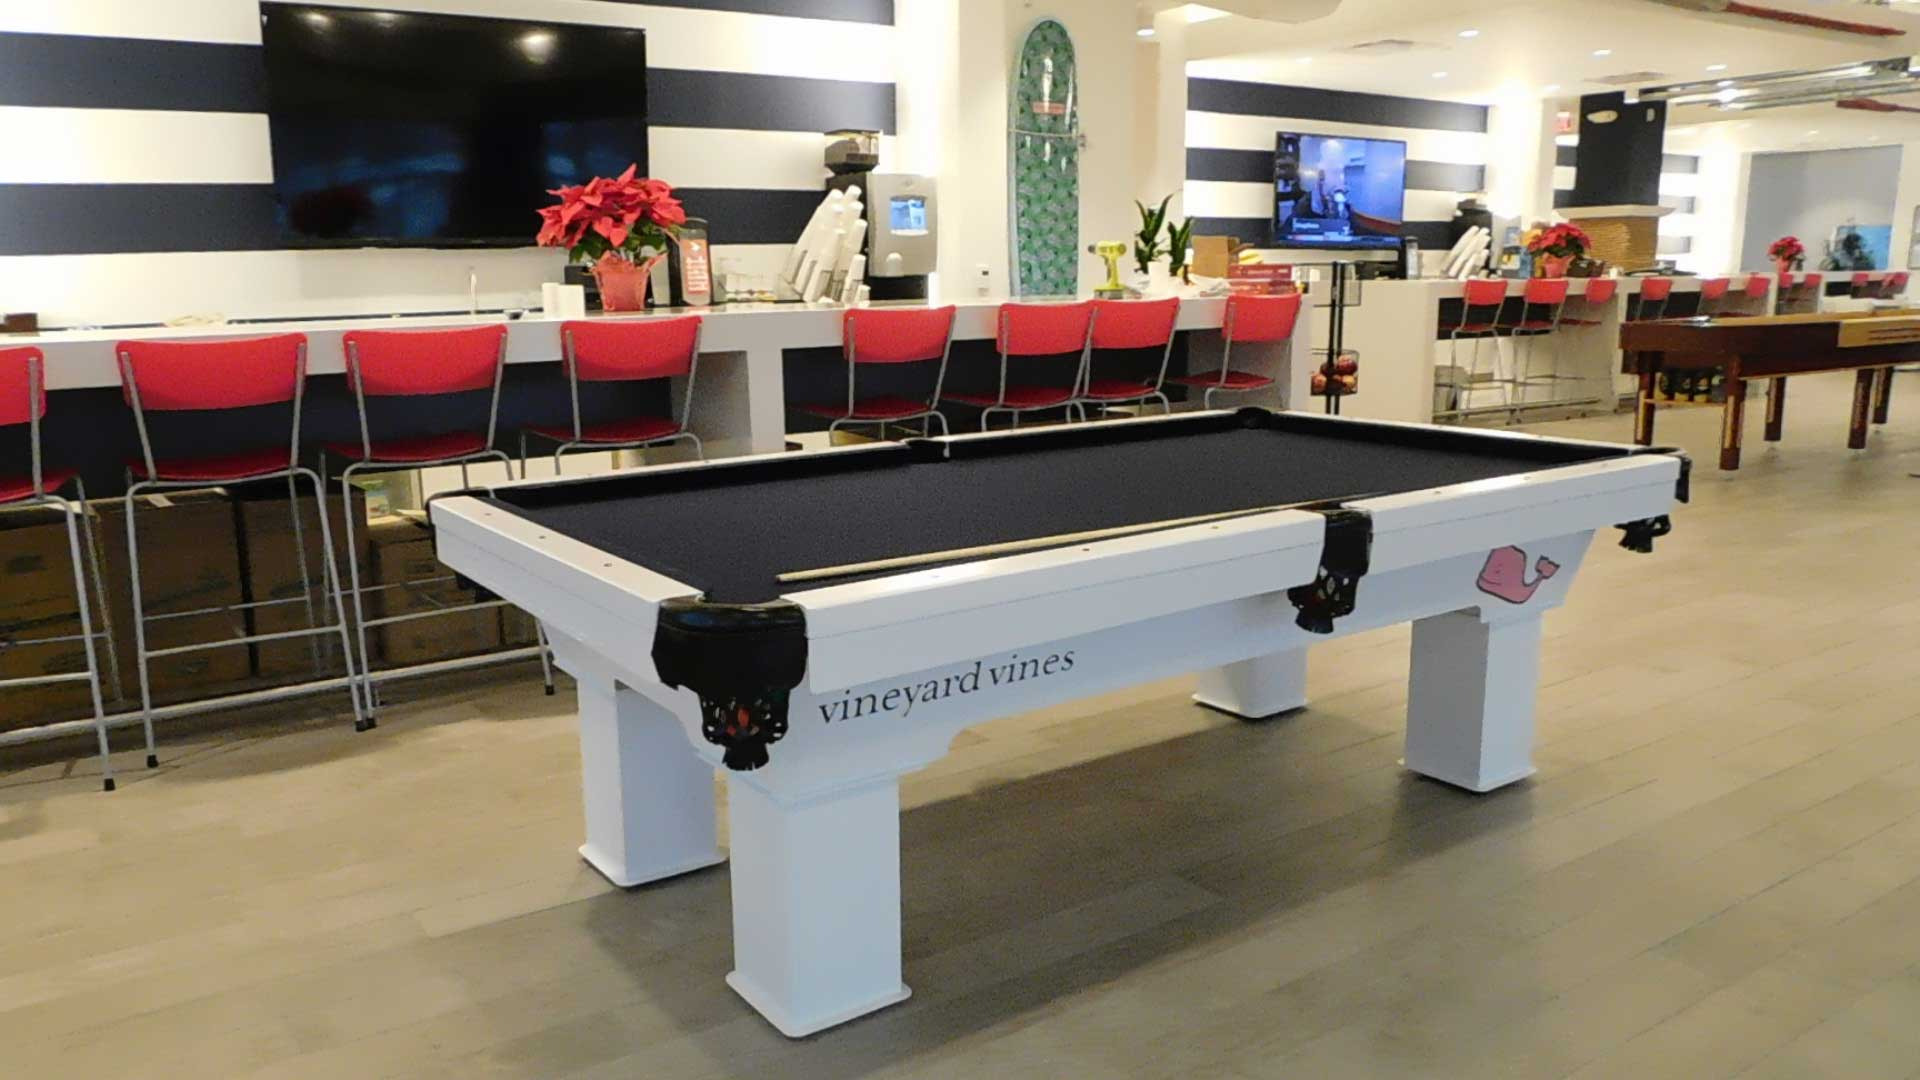 Vineyard Vine's custom outdoor pool table with company logo from R&R Outdoors All Weather Billiards